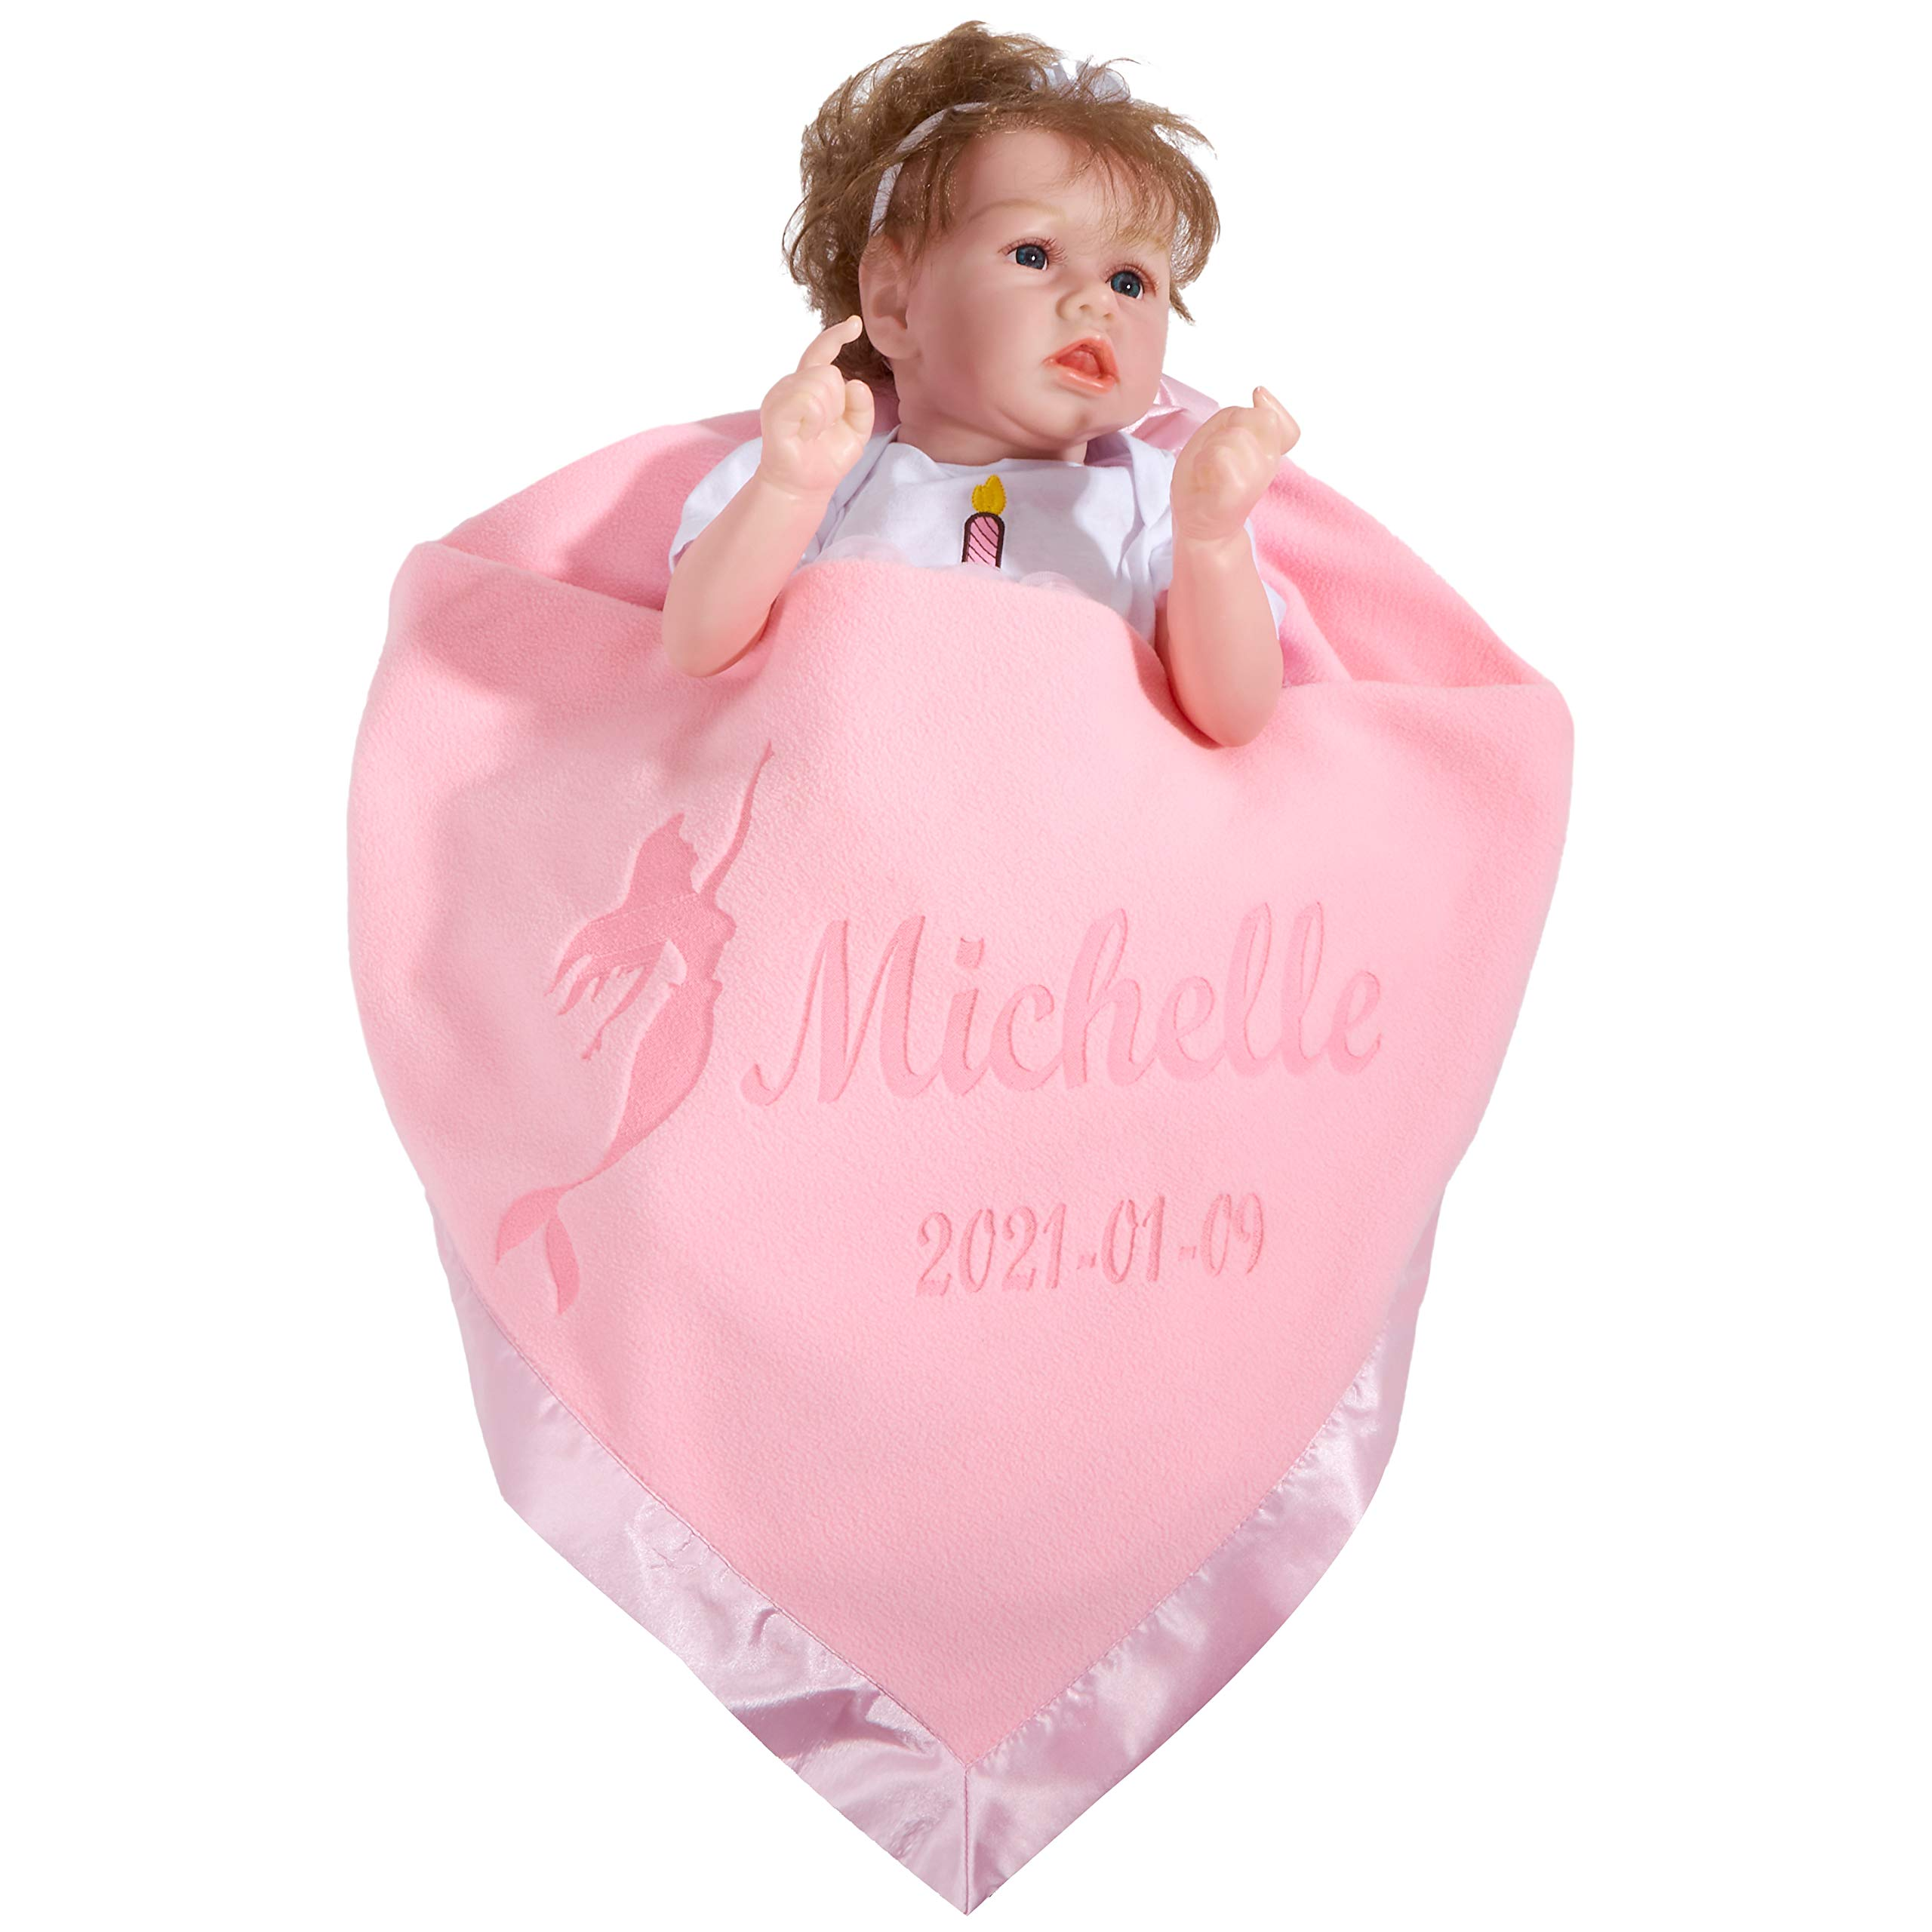 Custom Personalized Baby Blanket with Satin Trim Custom Newborn or Infant Name Gifts for Family, 39''x39'' (Pink)